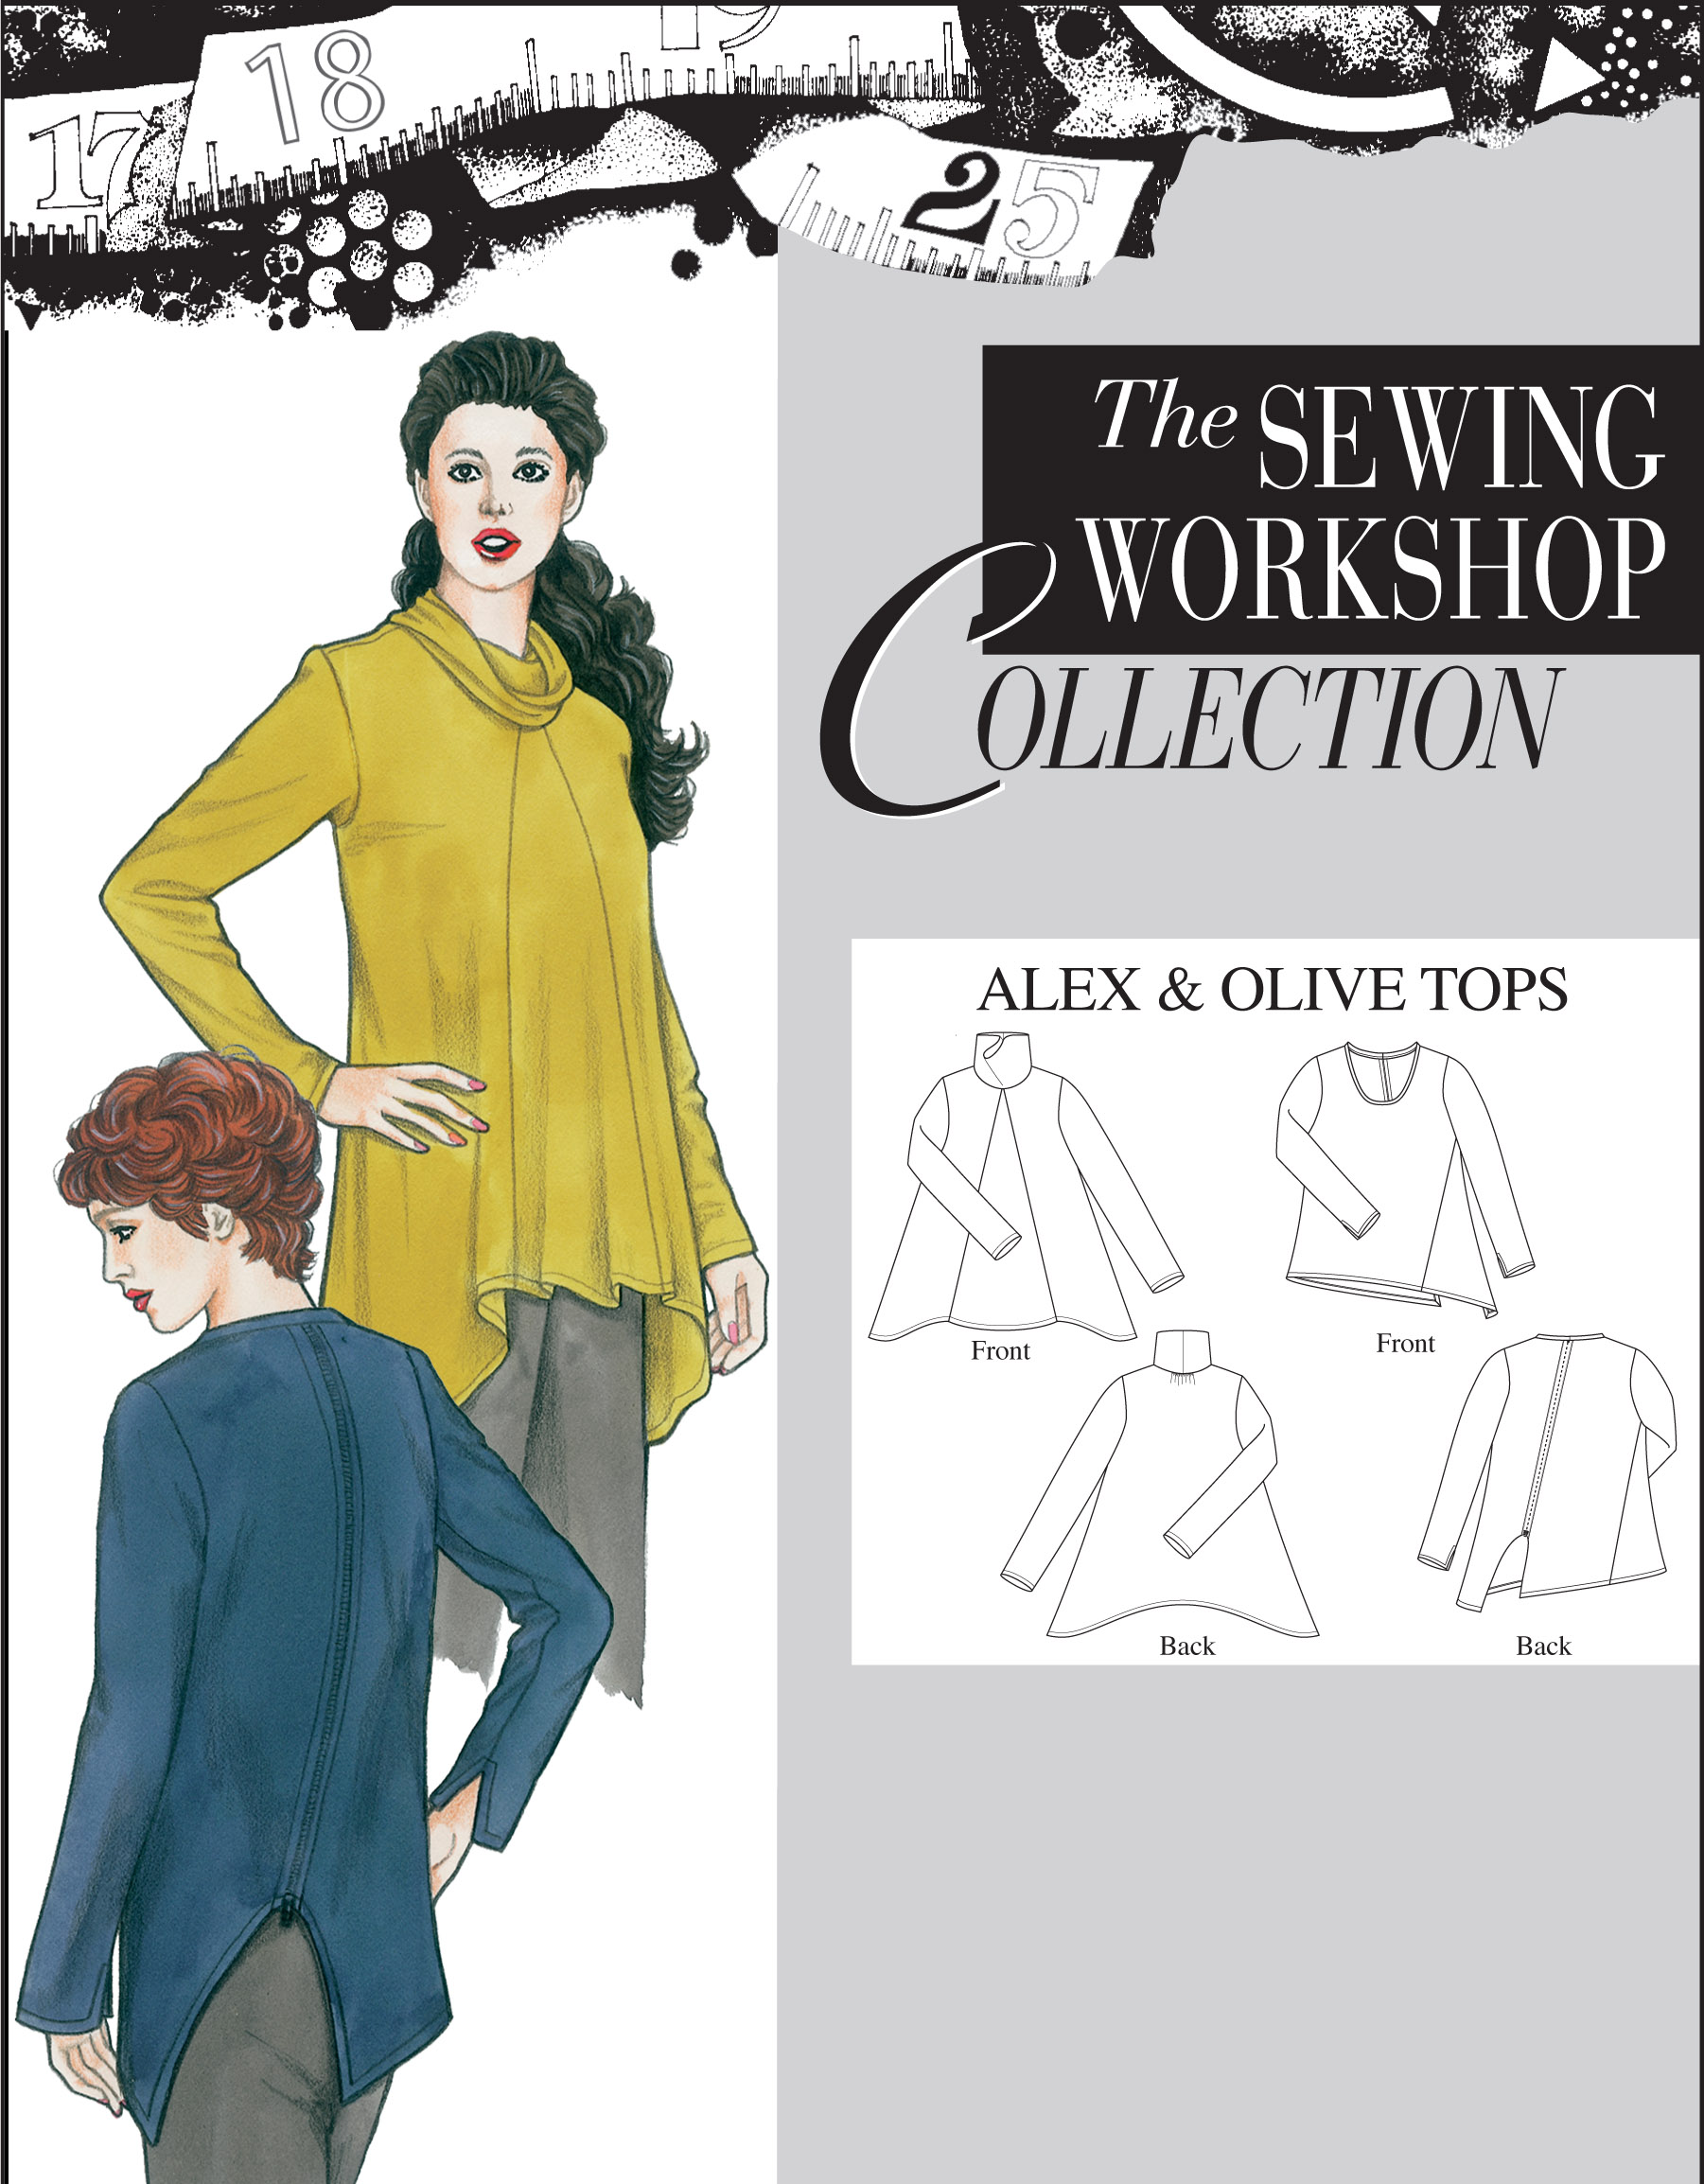 Sewing Workshop Alex & Olive Tops